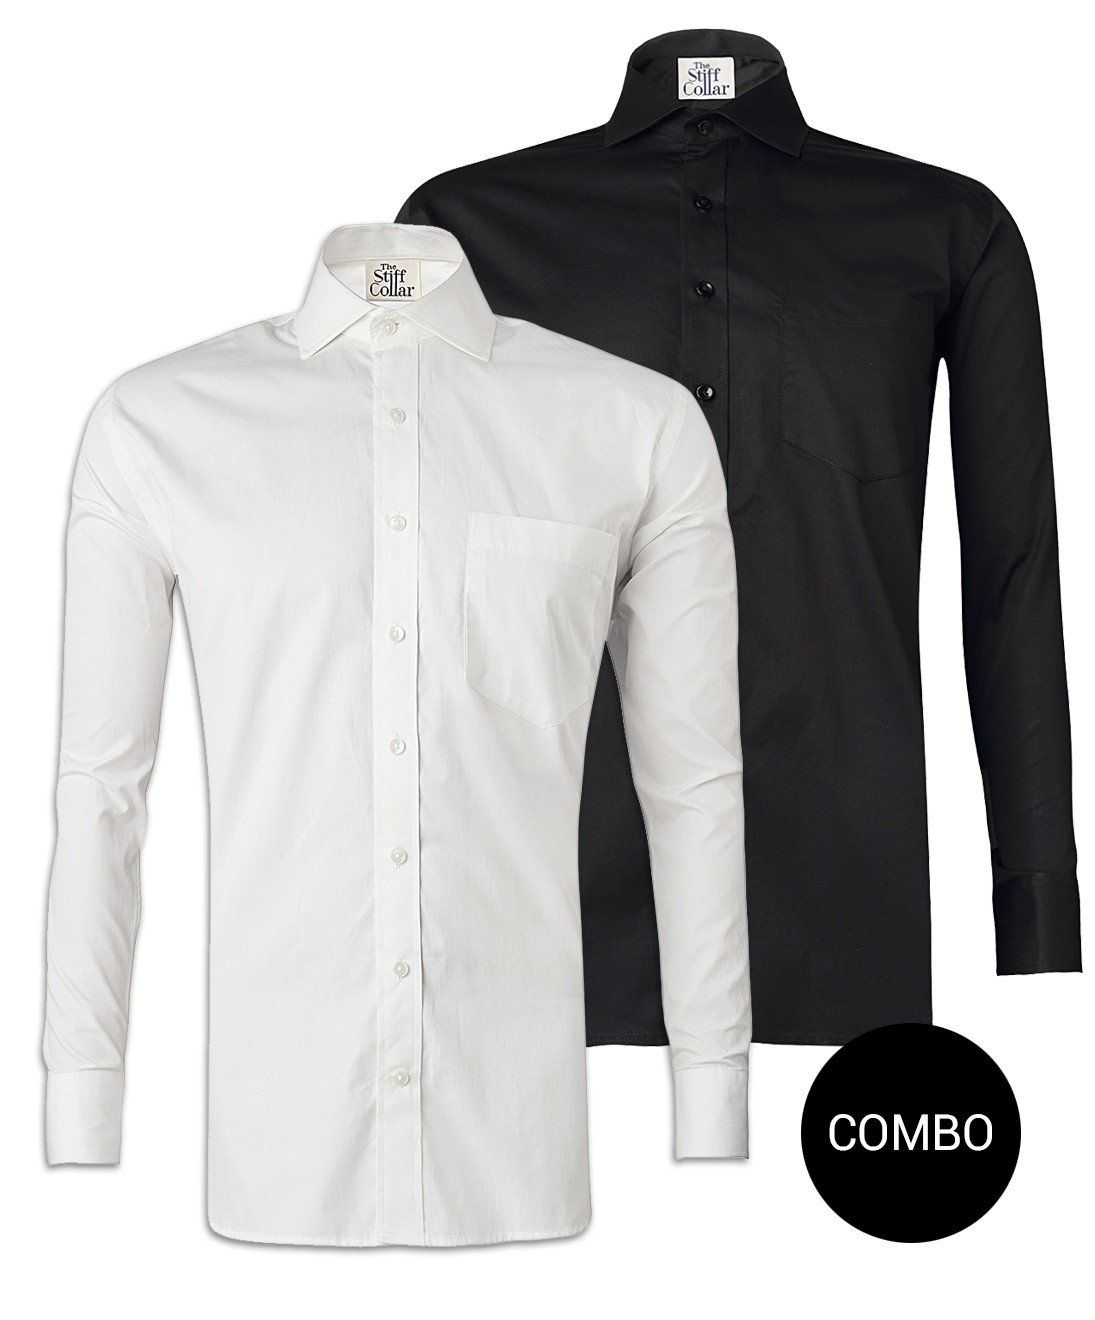 bbba42b678b White Twill and Black Satin Regular Fit Shirt Combo  mensstyle  cottonshirt   mensdesign  designershirt  mensshirt  mensfashion